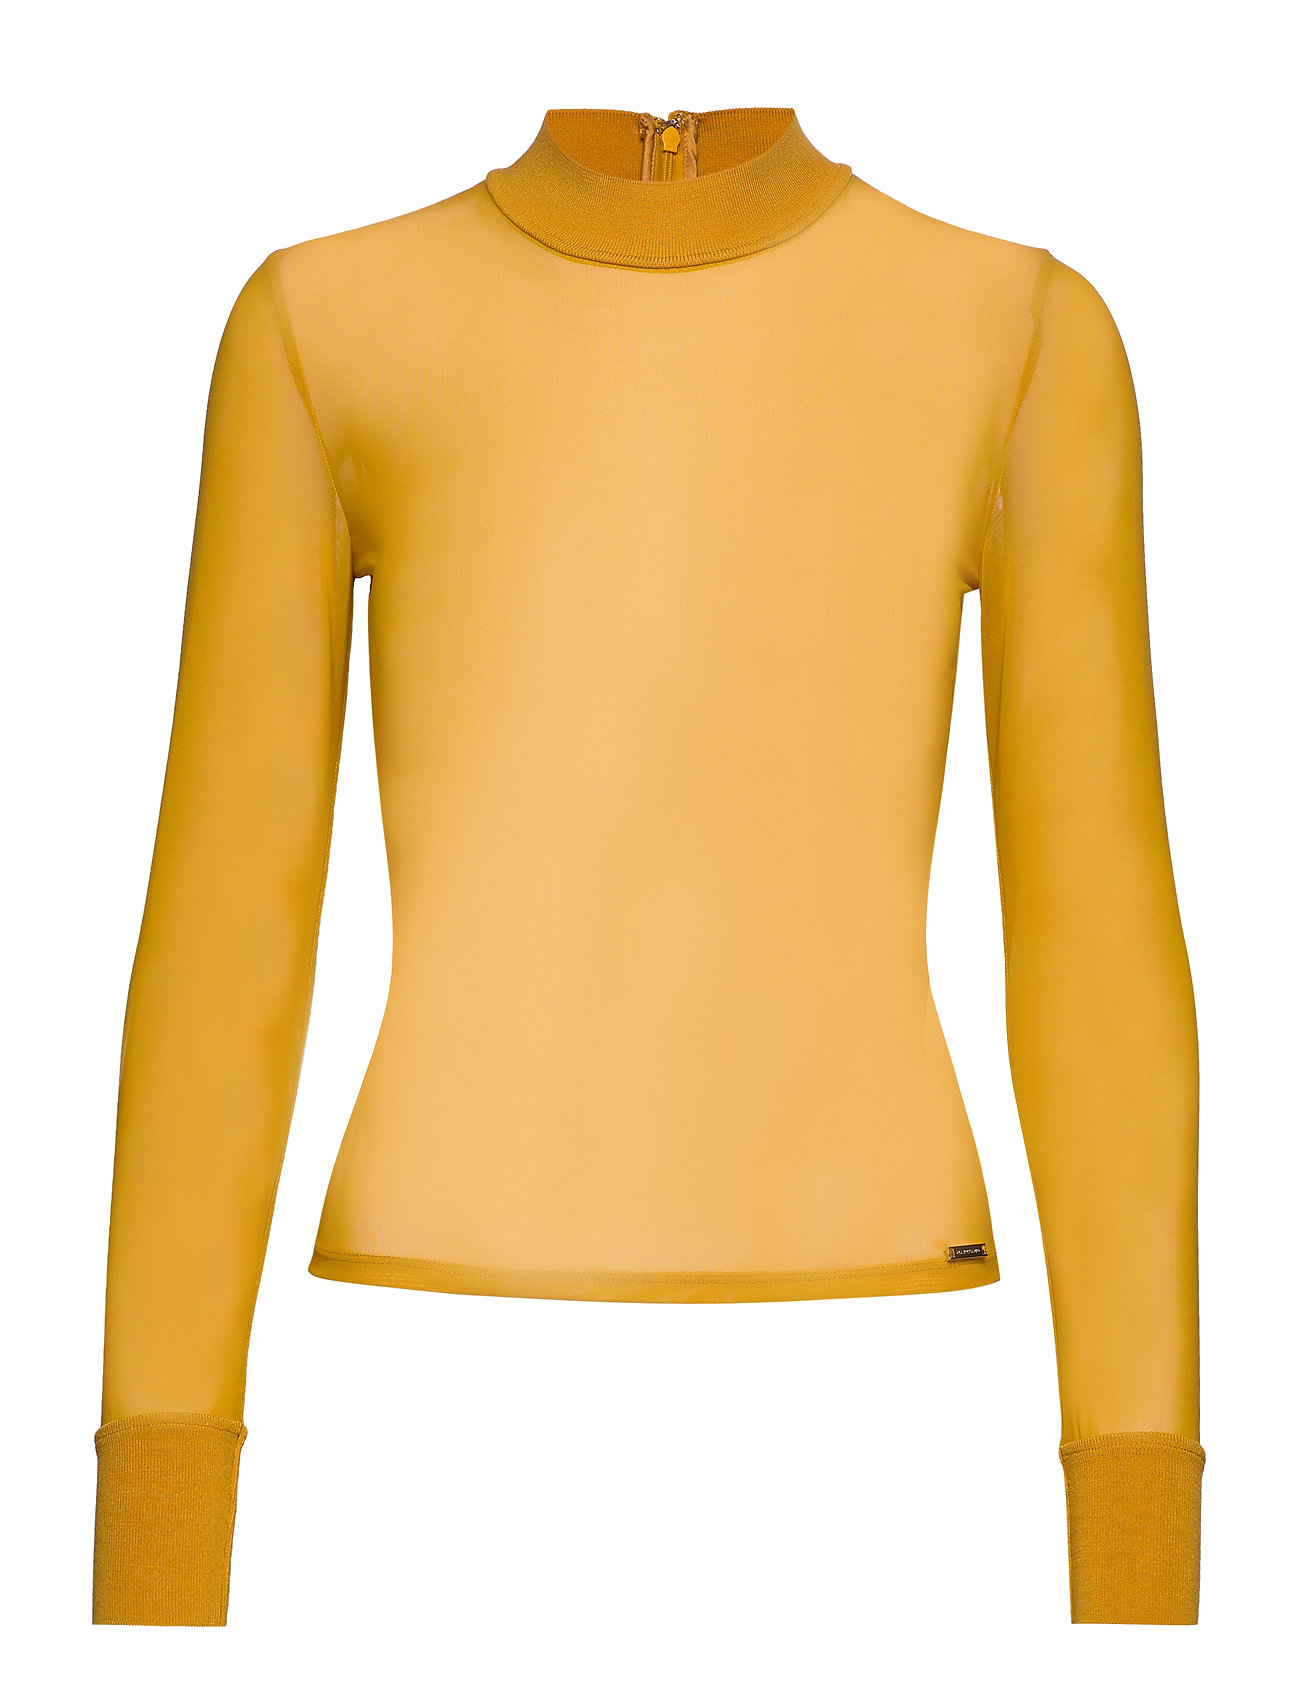 Marciano by GUESS SID MESH TOP - MISS MUSTARD